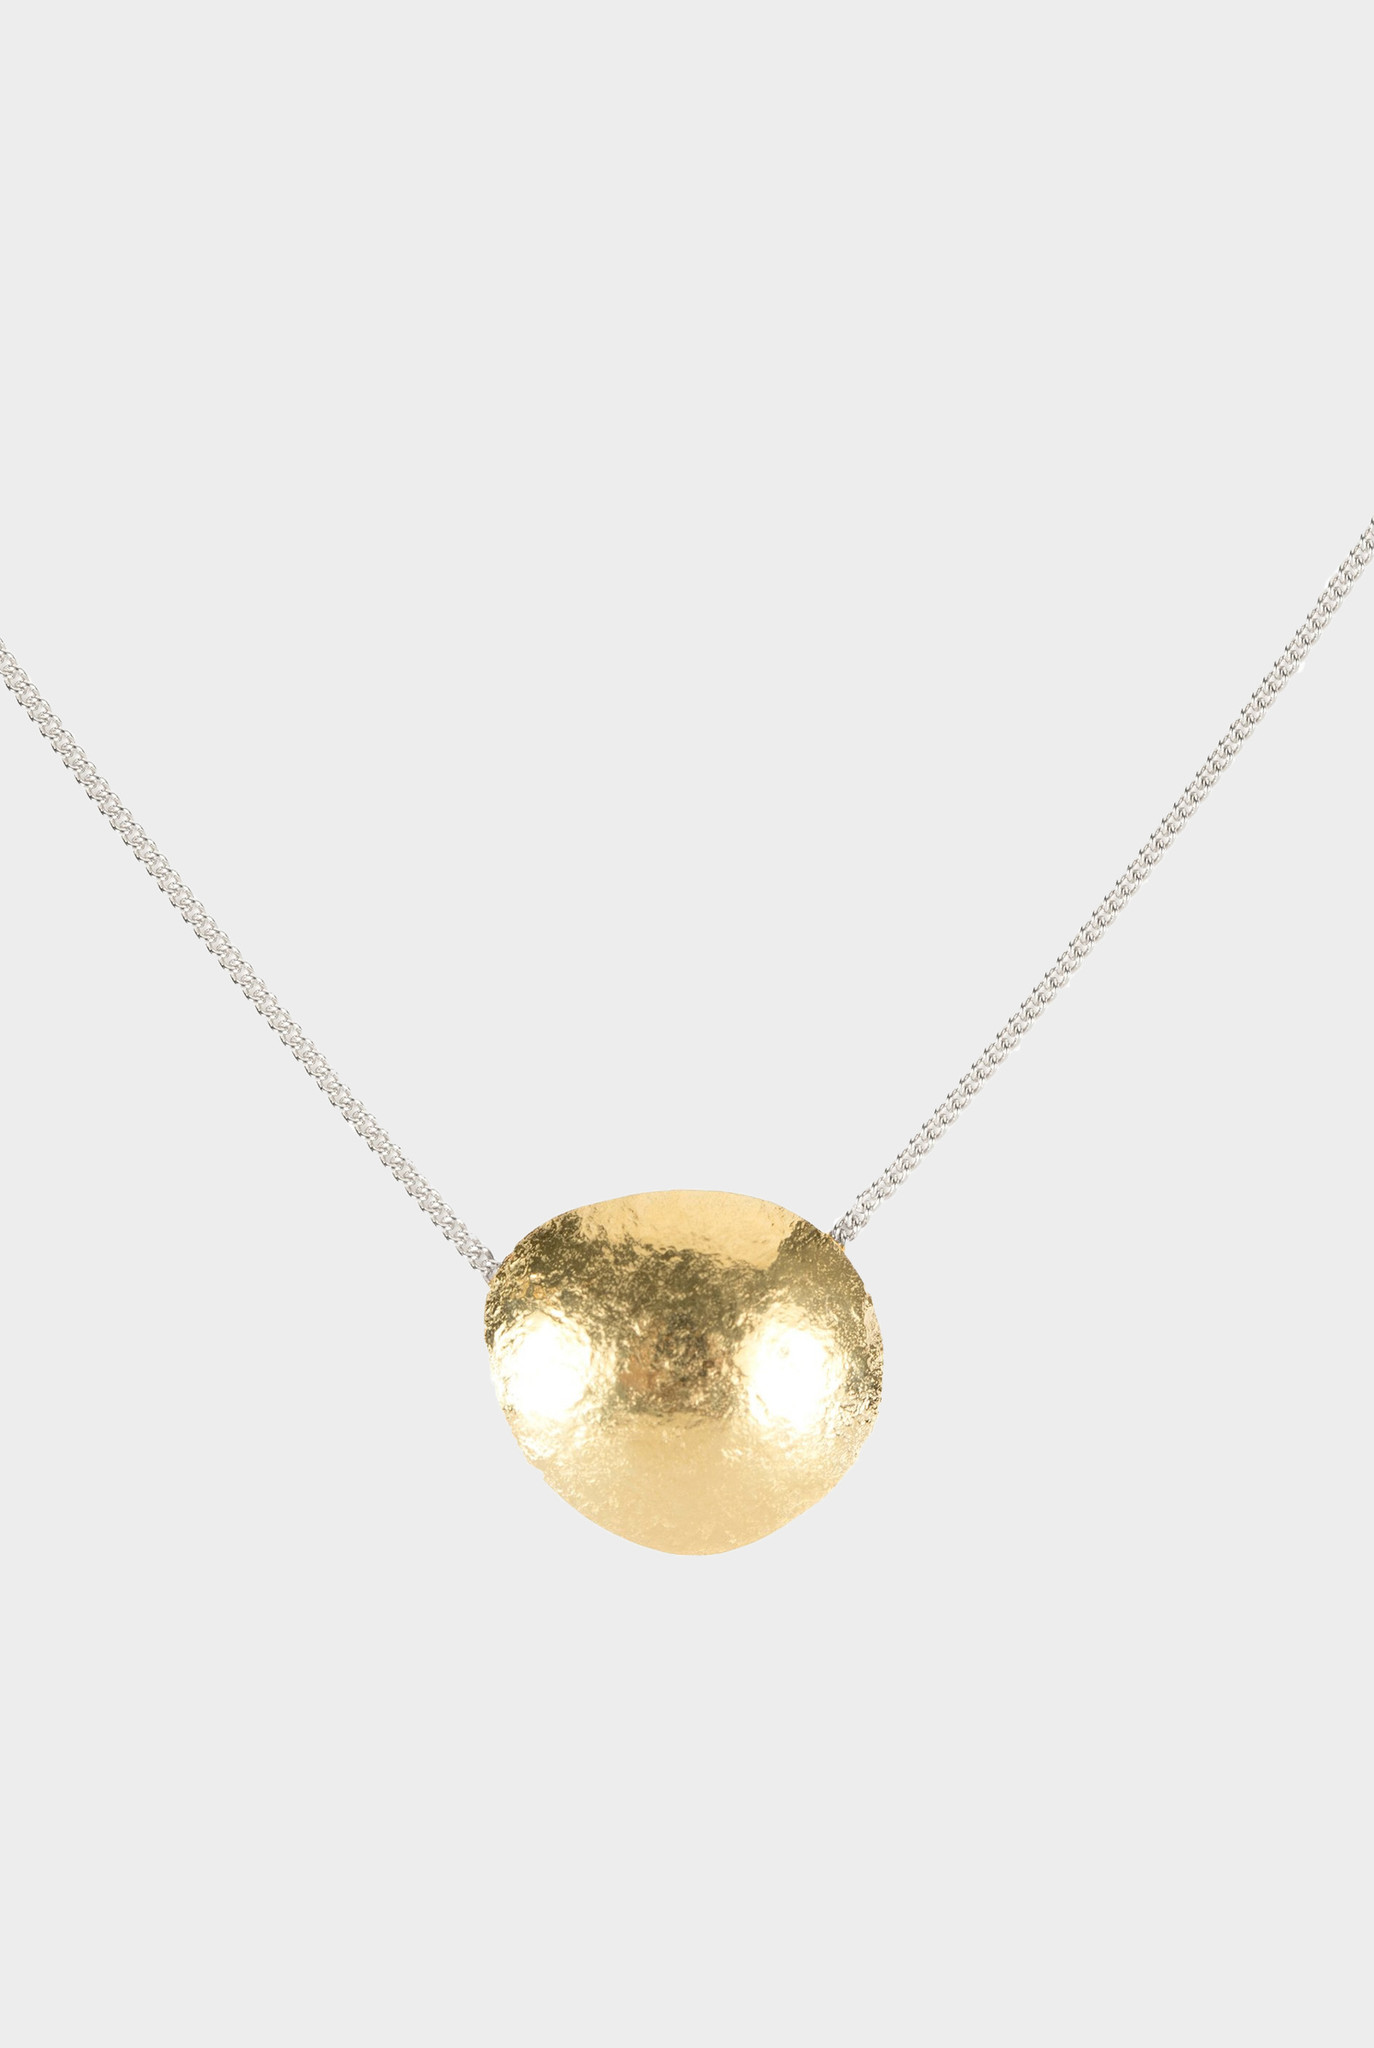 Necklace with hammered element gold plated